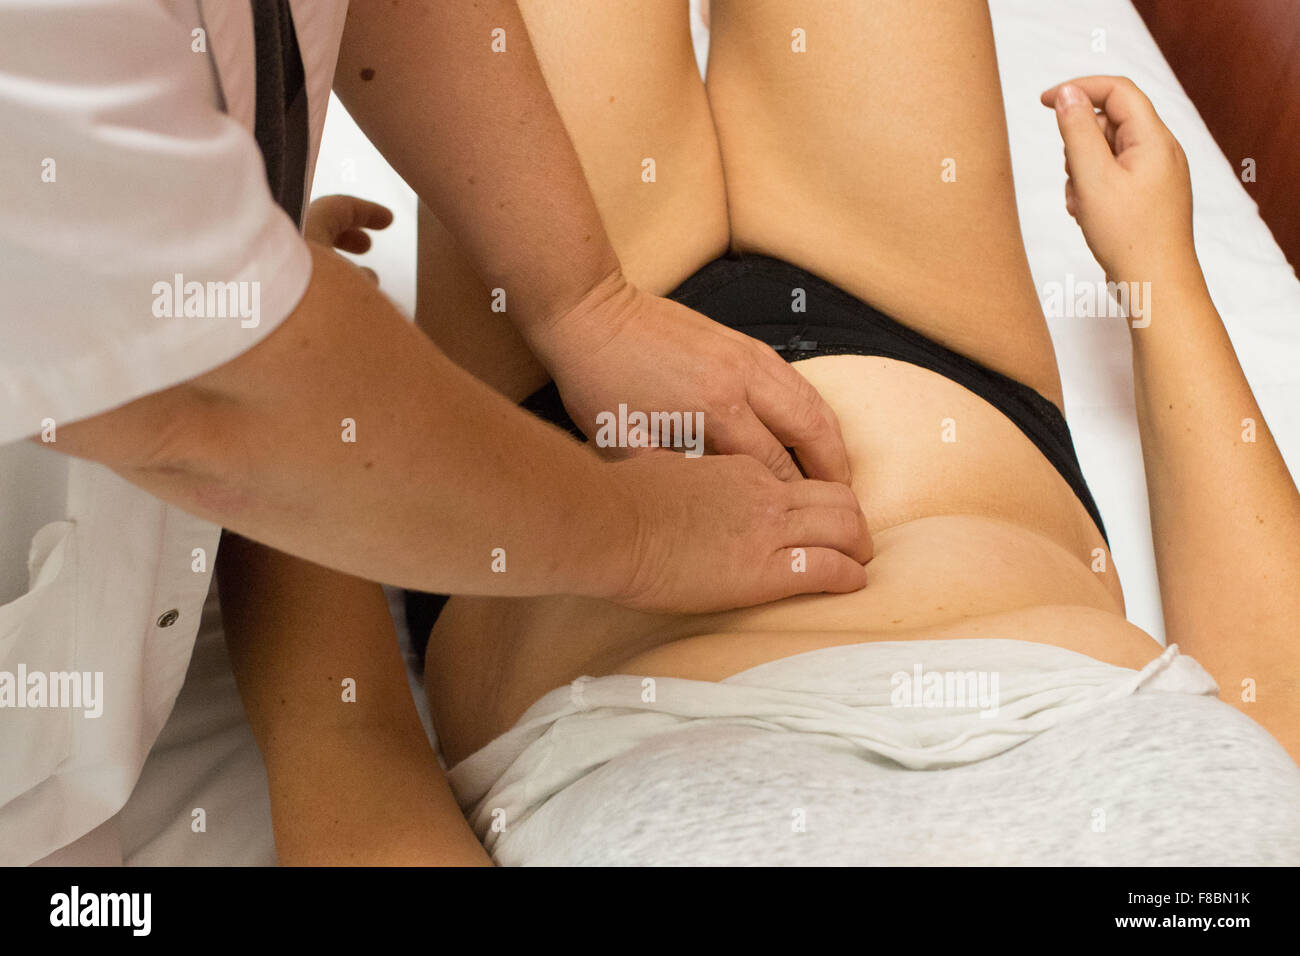 French women in Tunisia for cosmetic surgery of the abdomen ( abdominoplasty ), at Hannibal Internationale private - Stock Image